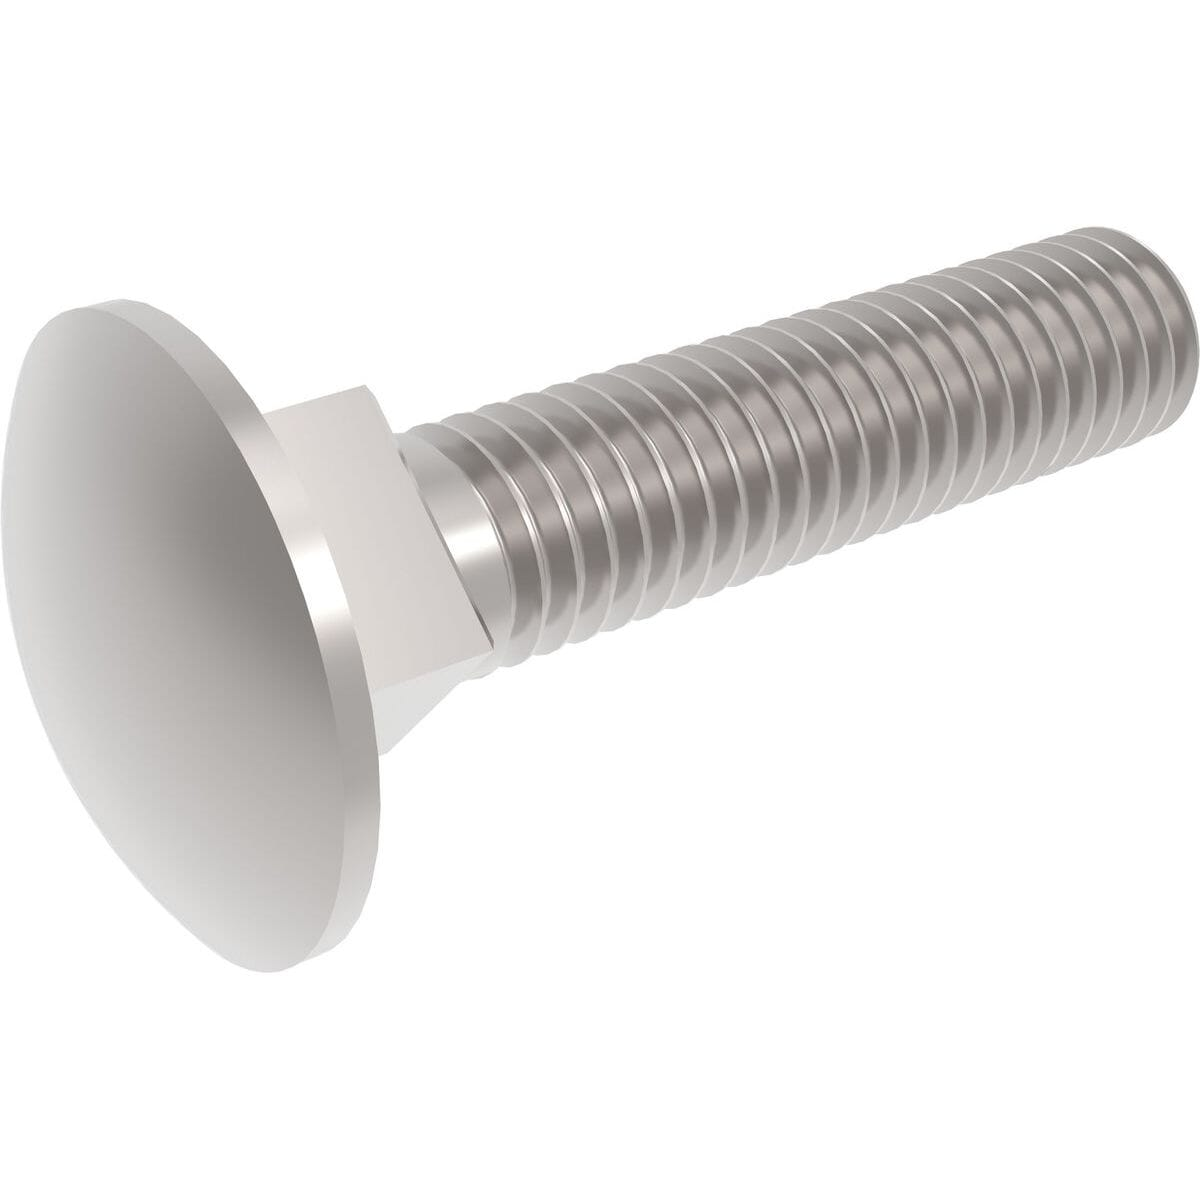 M8 x 140mm Full Thread Carriage Bolts (DIN 603) - Marine Stainless Steel (A4)